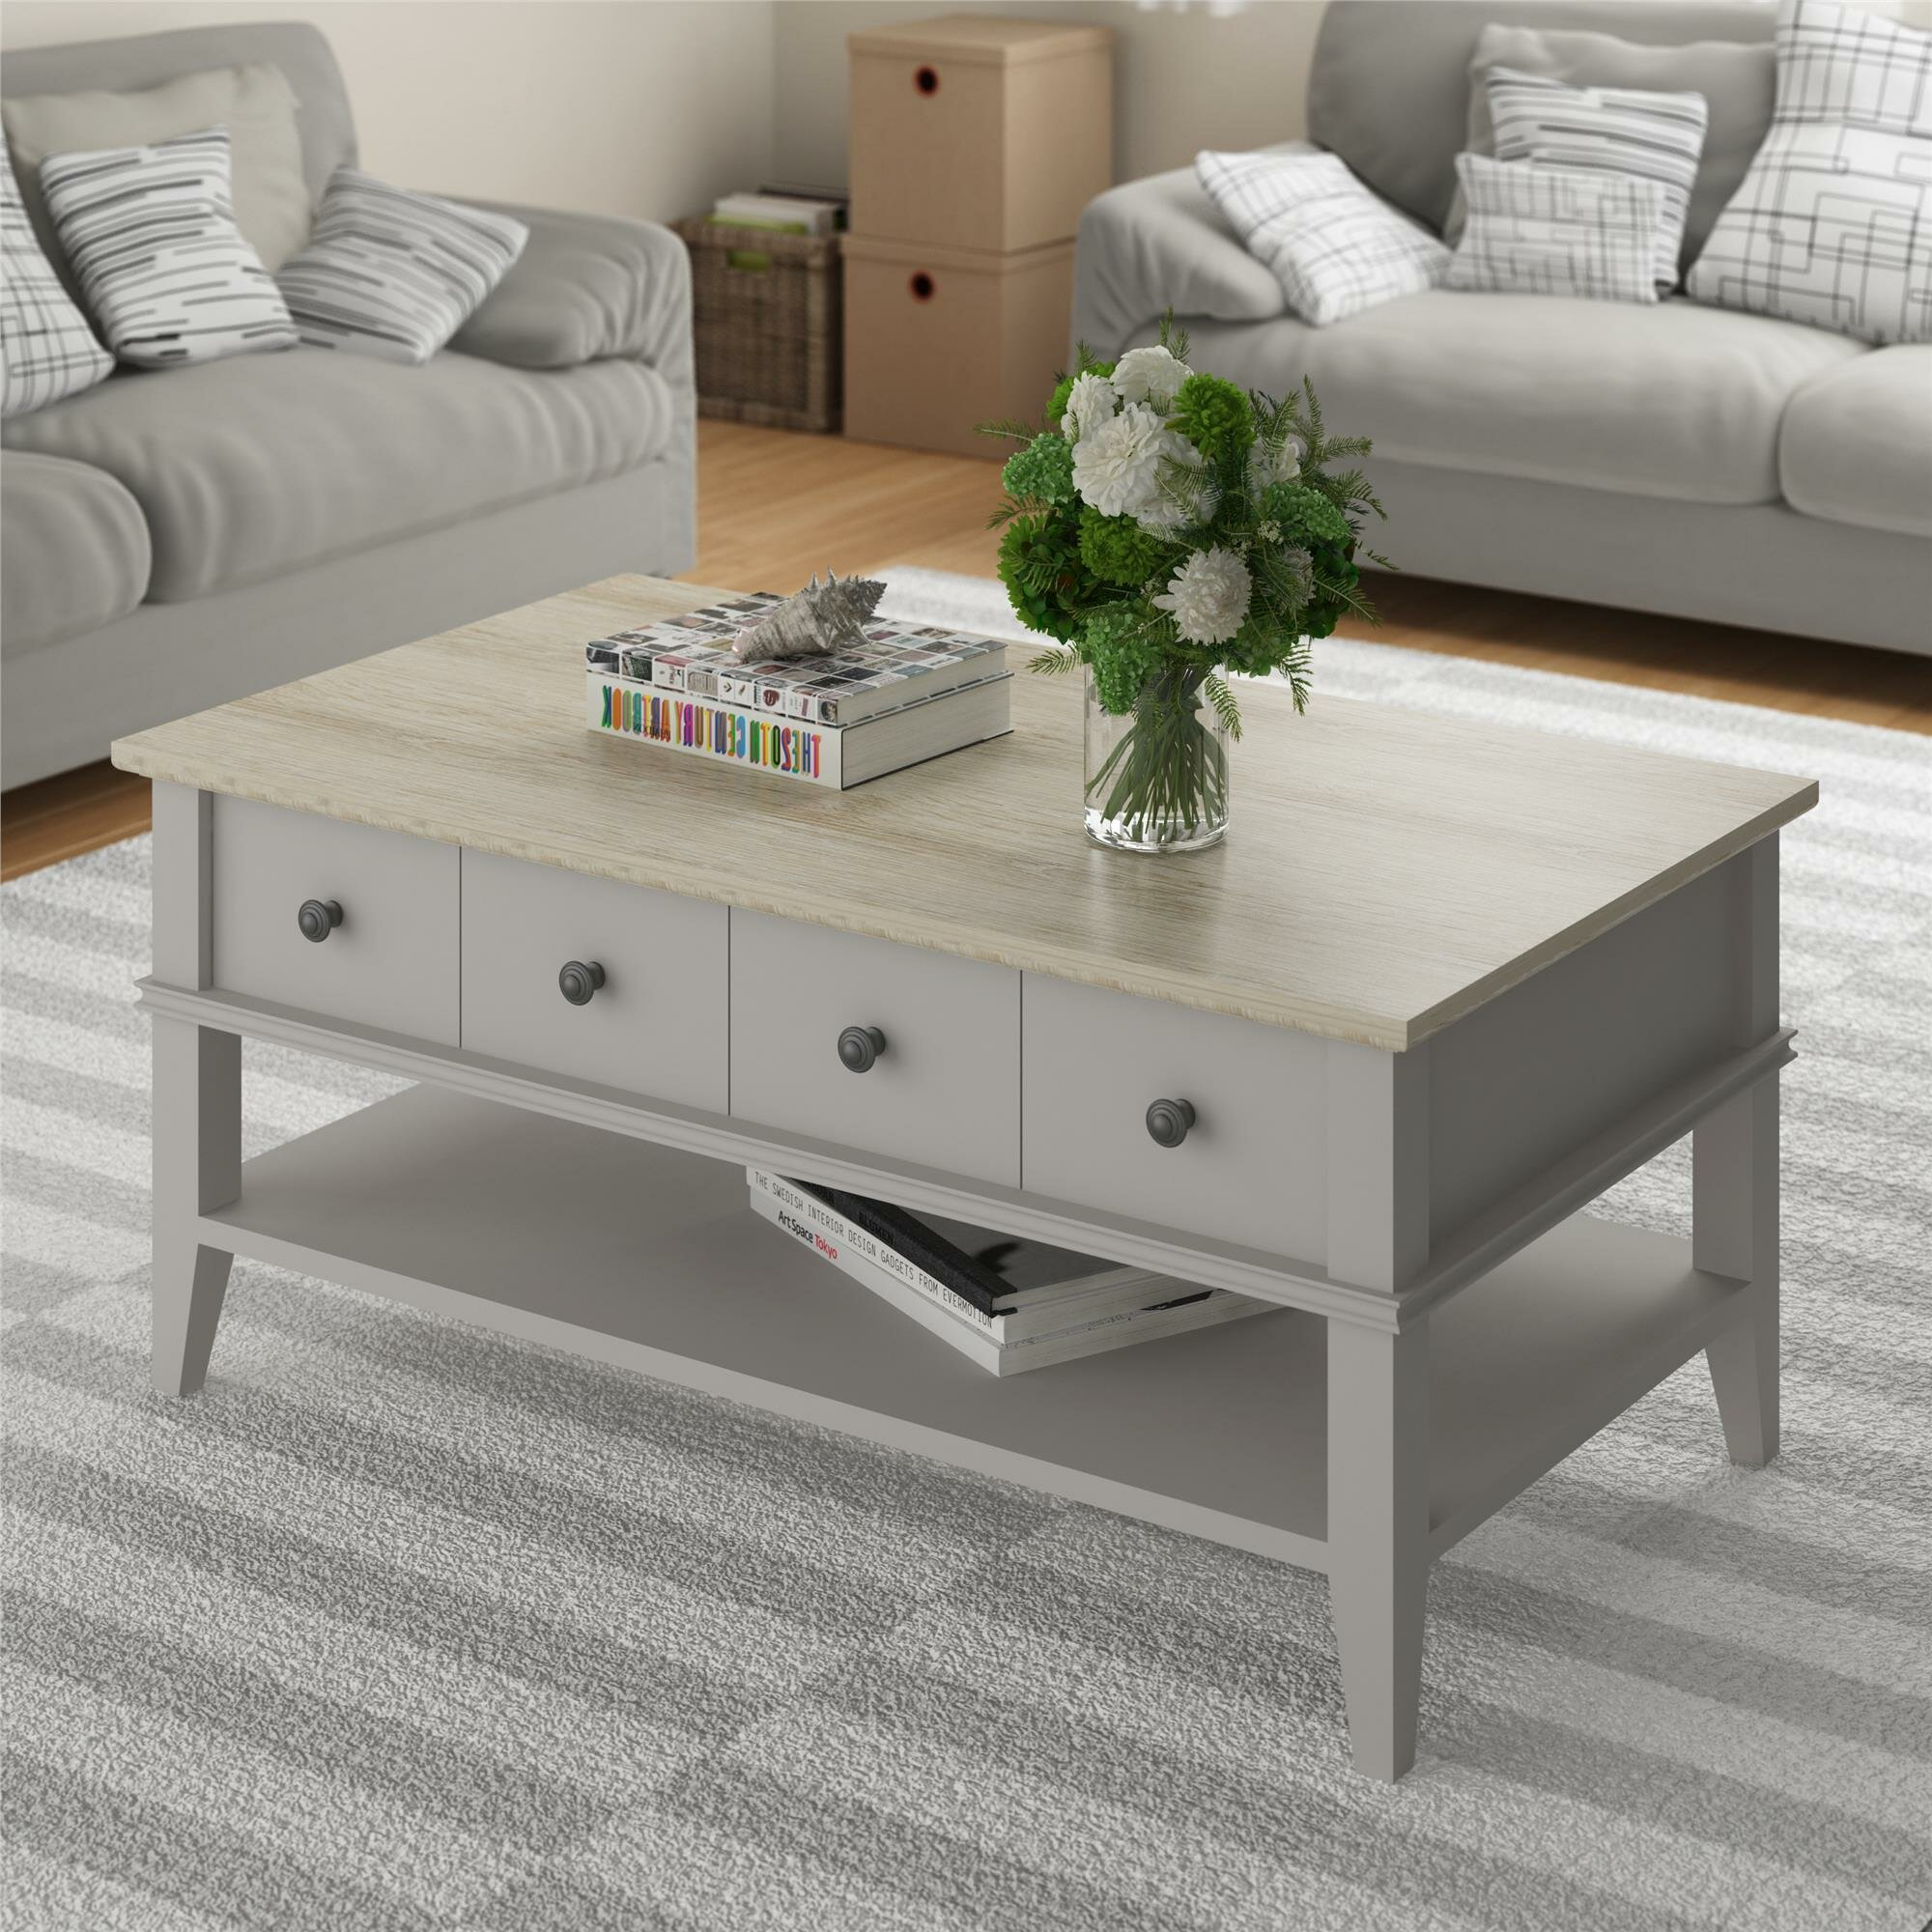 Beachcrest Home Montverde Coffee Table & Reviews